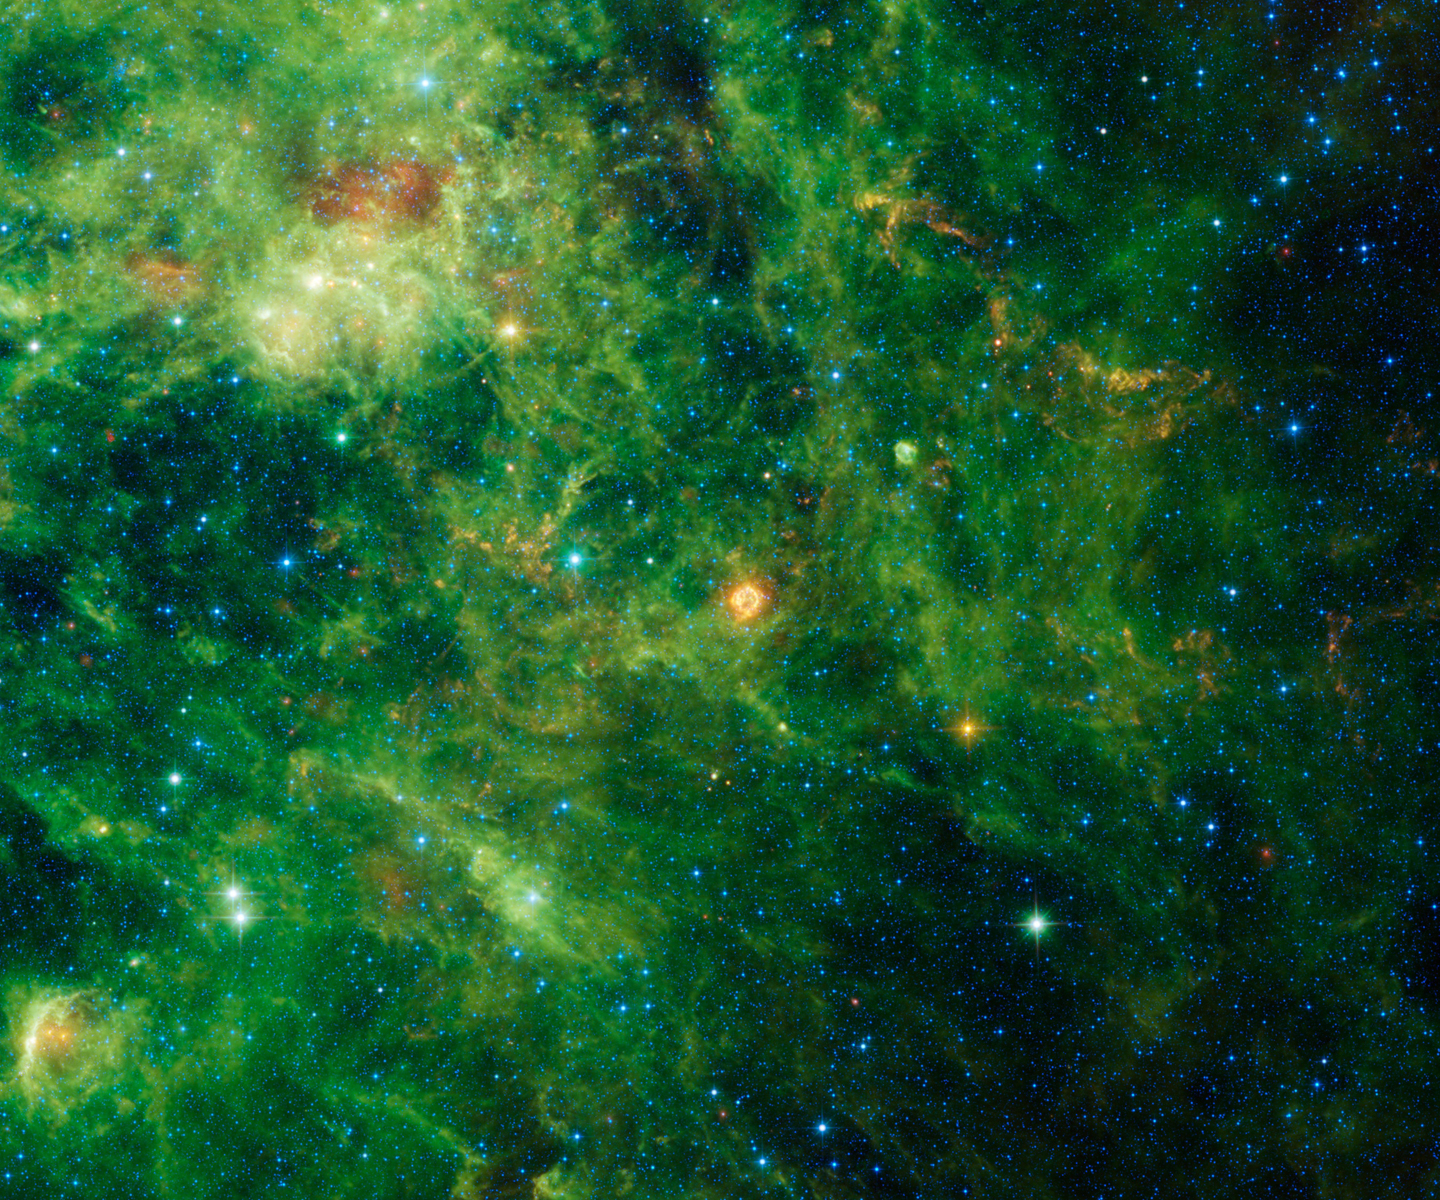 Supernova Cassiopeia A Seen by WISE